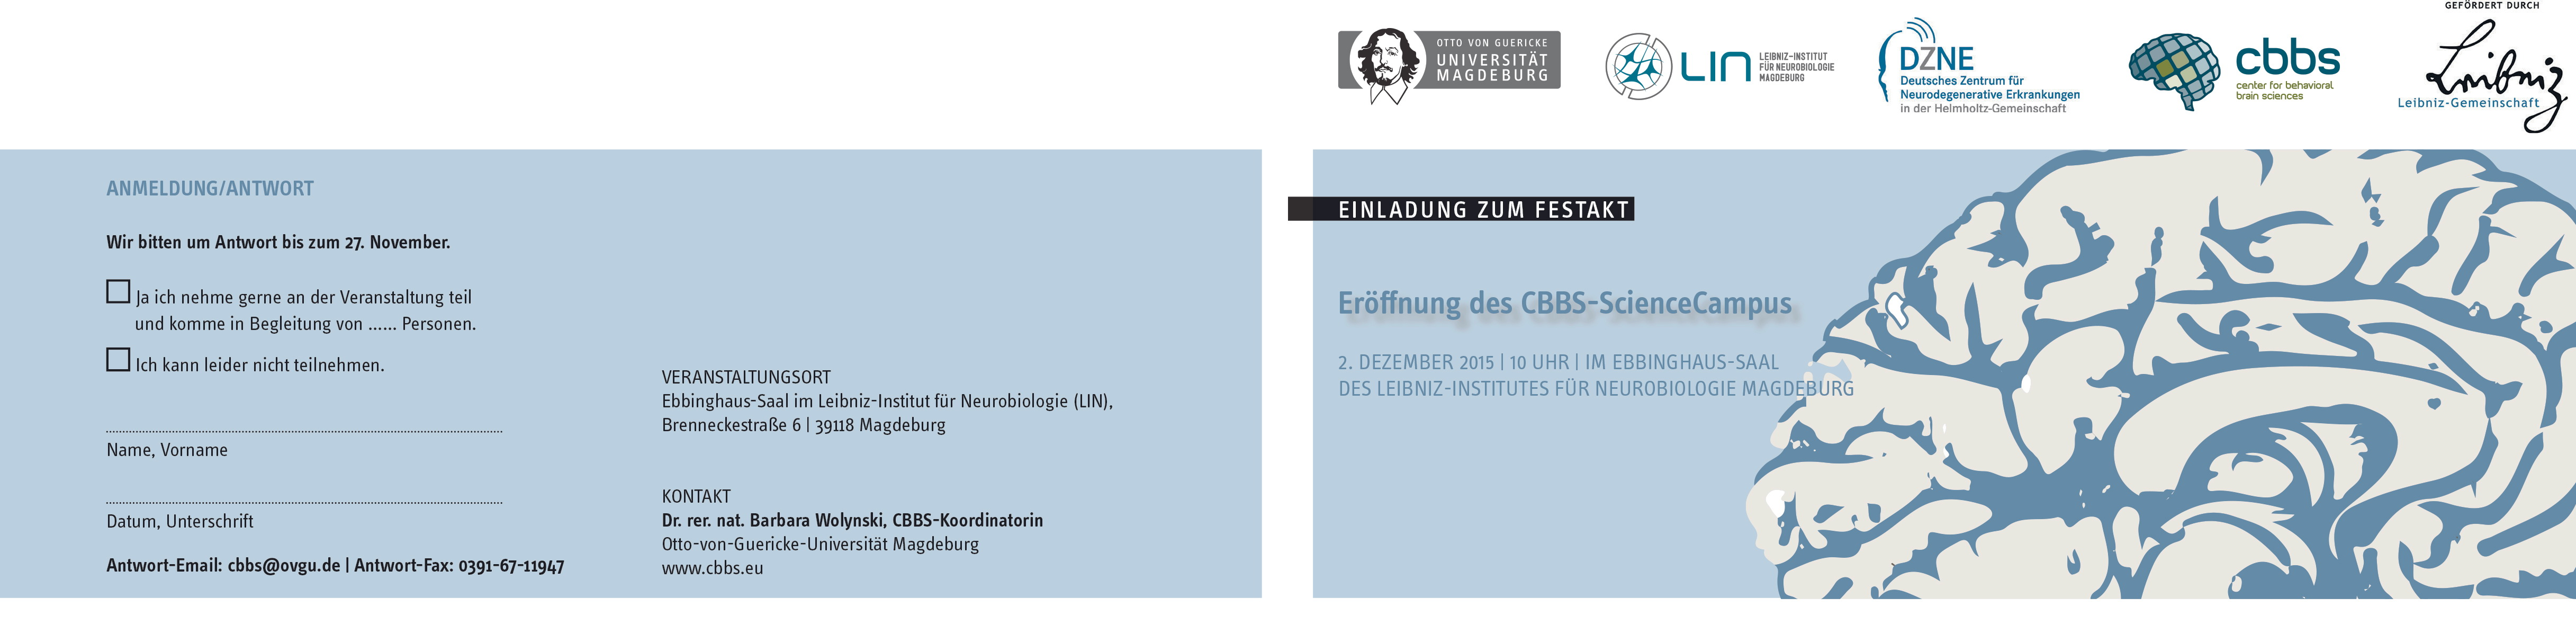 CBBS-ScienceCampus Einladung-1